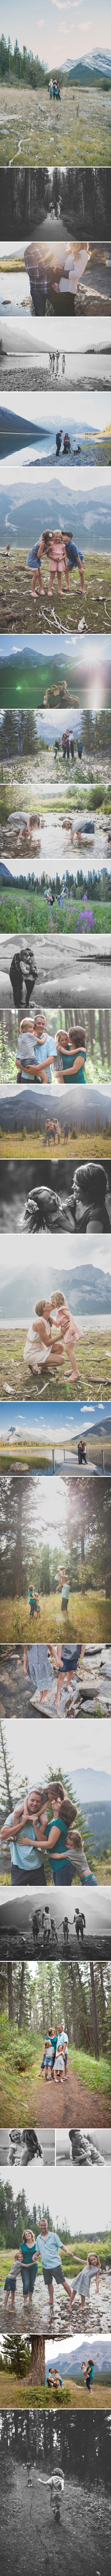 rocky mountain family photography   ©The Paper Deer Photography   thepaperdeer.ca